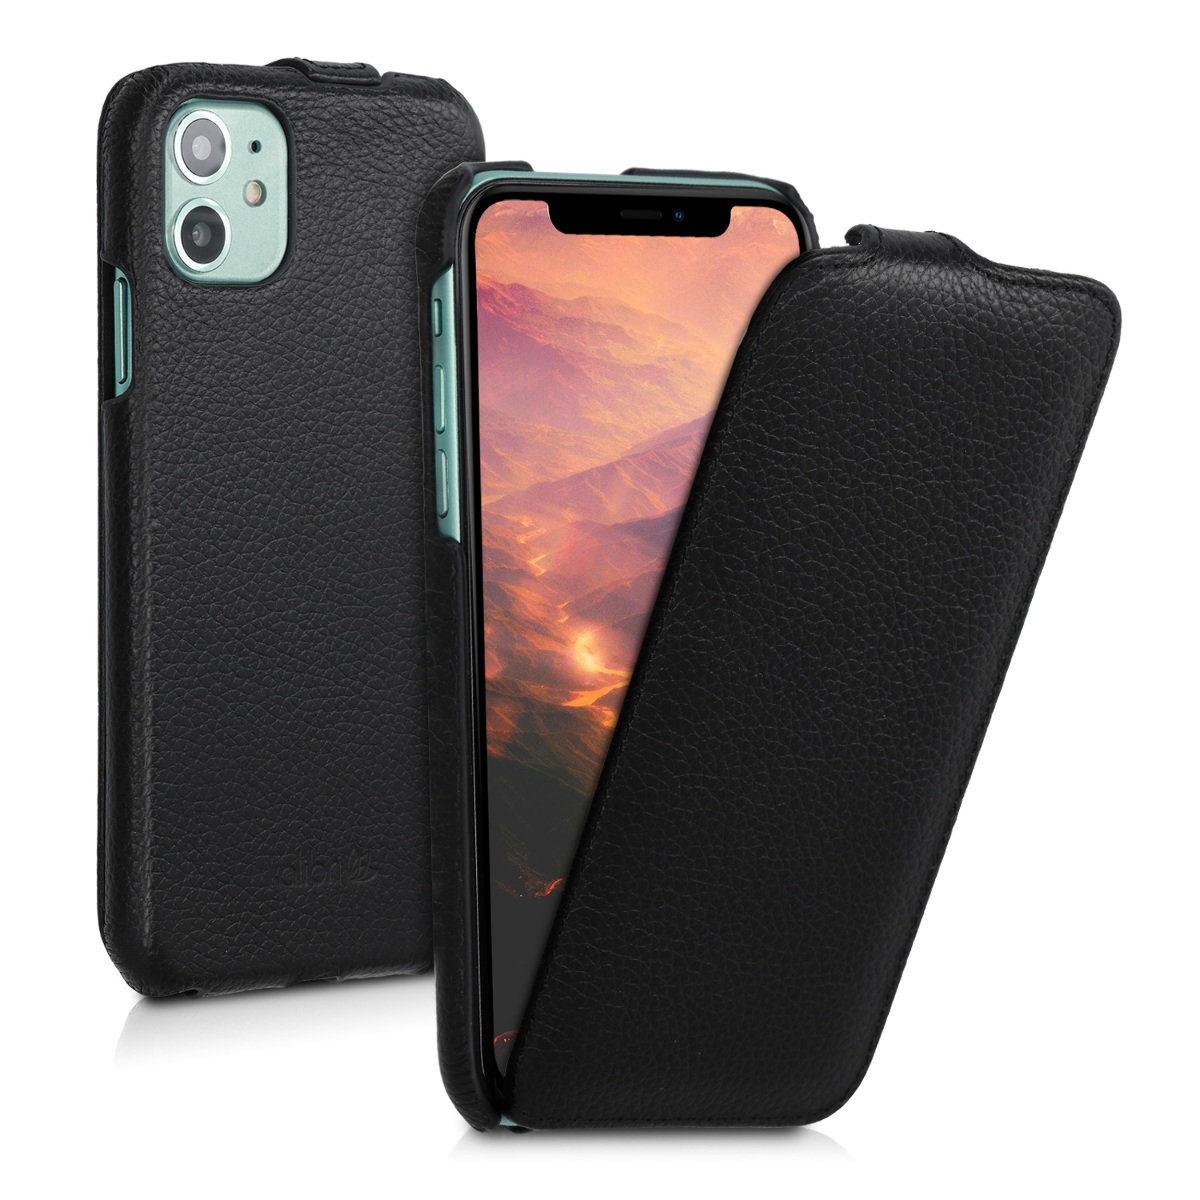 Kalibri Δερμάτινη Θήκη Flip Apple iPhone 11 - Ultra Slim Leather Protective Phone Cover - Black (50410.01)